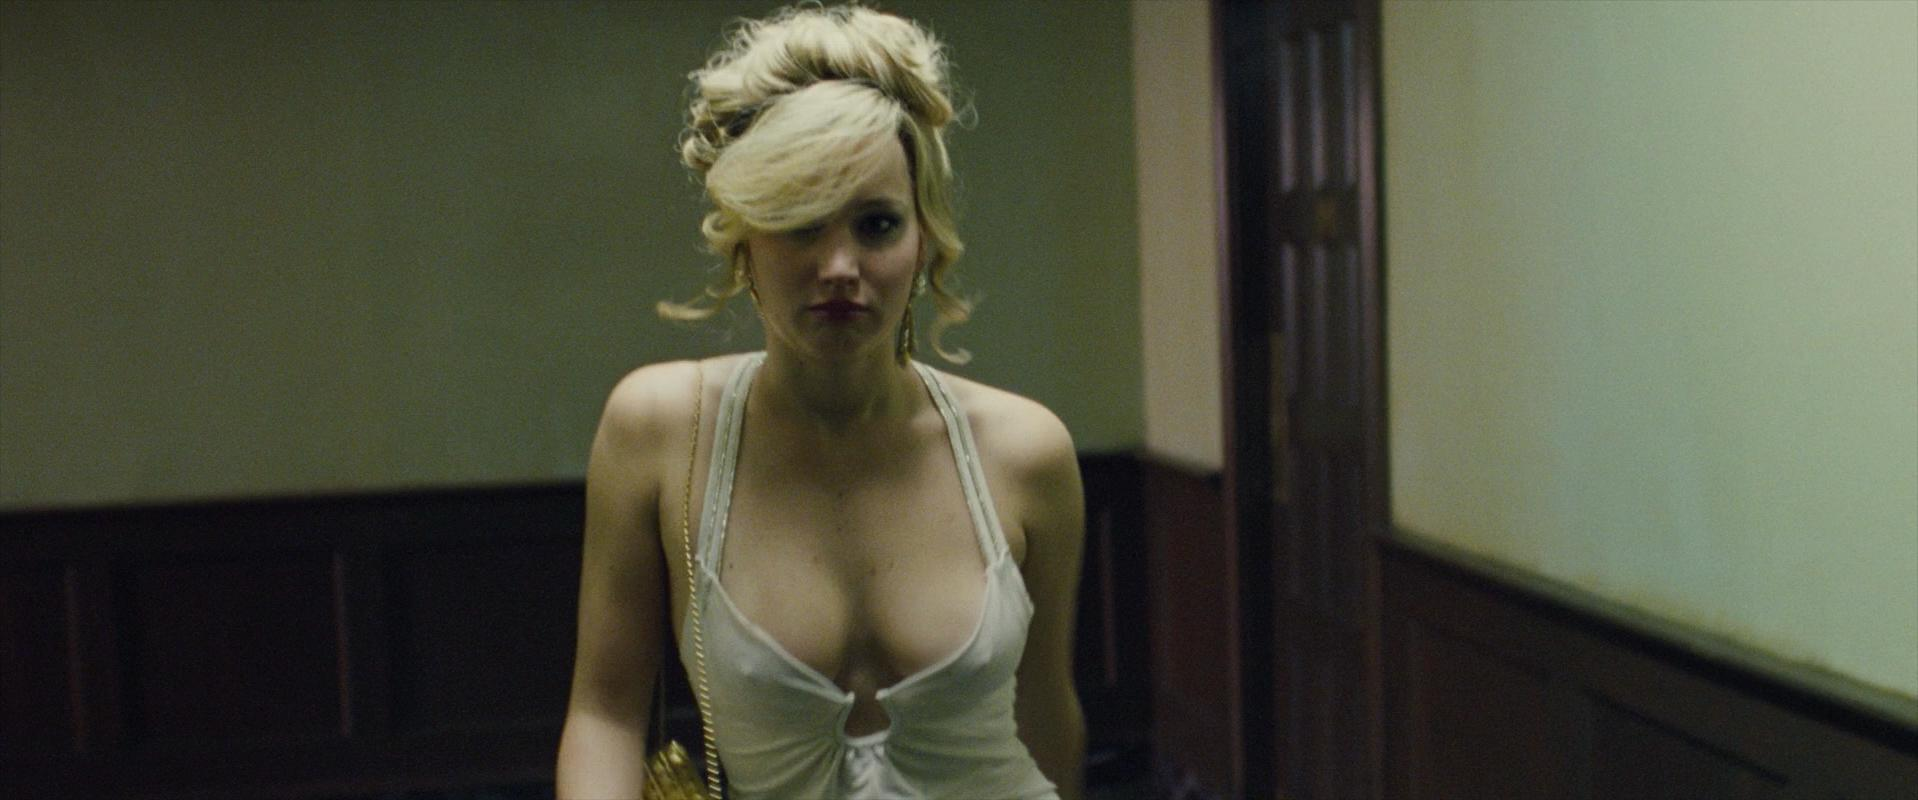 Jennifer Lawrence sexy - American Hustle (2013)